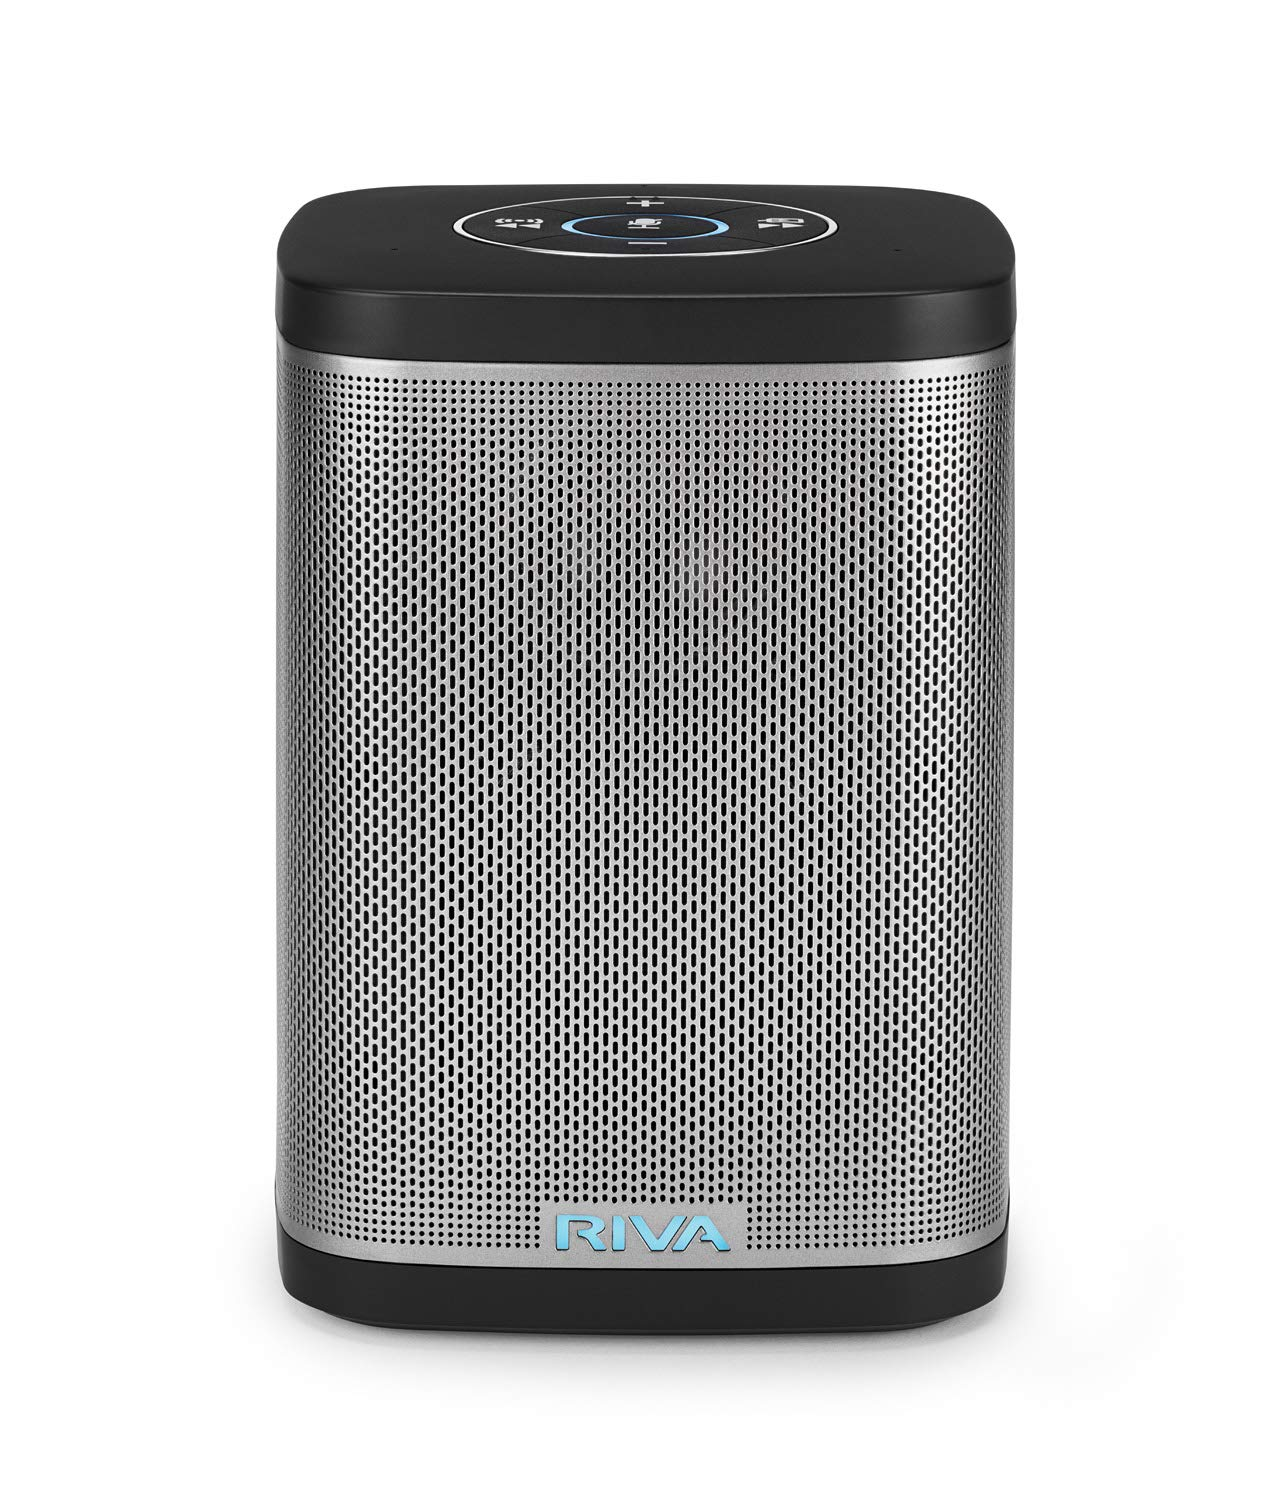 RIVA Concert with Alexa Built-in - Finally A Wireless Smart Speaker That Sounds Truly Amazing - WiFi, Airplay and Bluetooth Connectivity, Splash Resistant and Optional Battery (Black) by RIVA (Image #1)